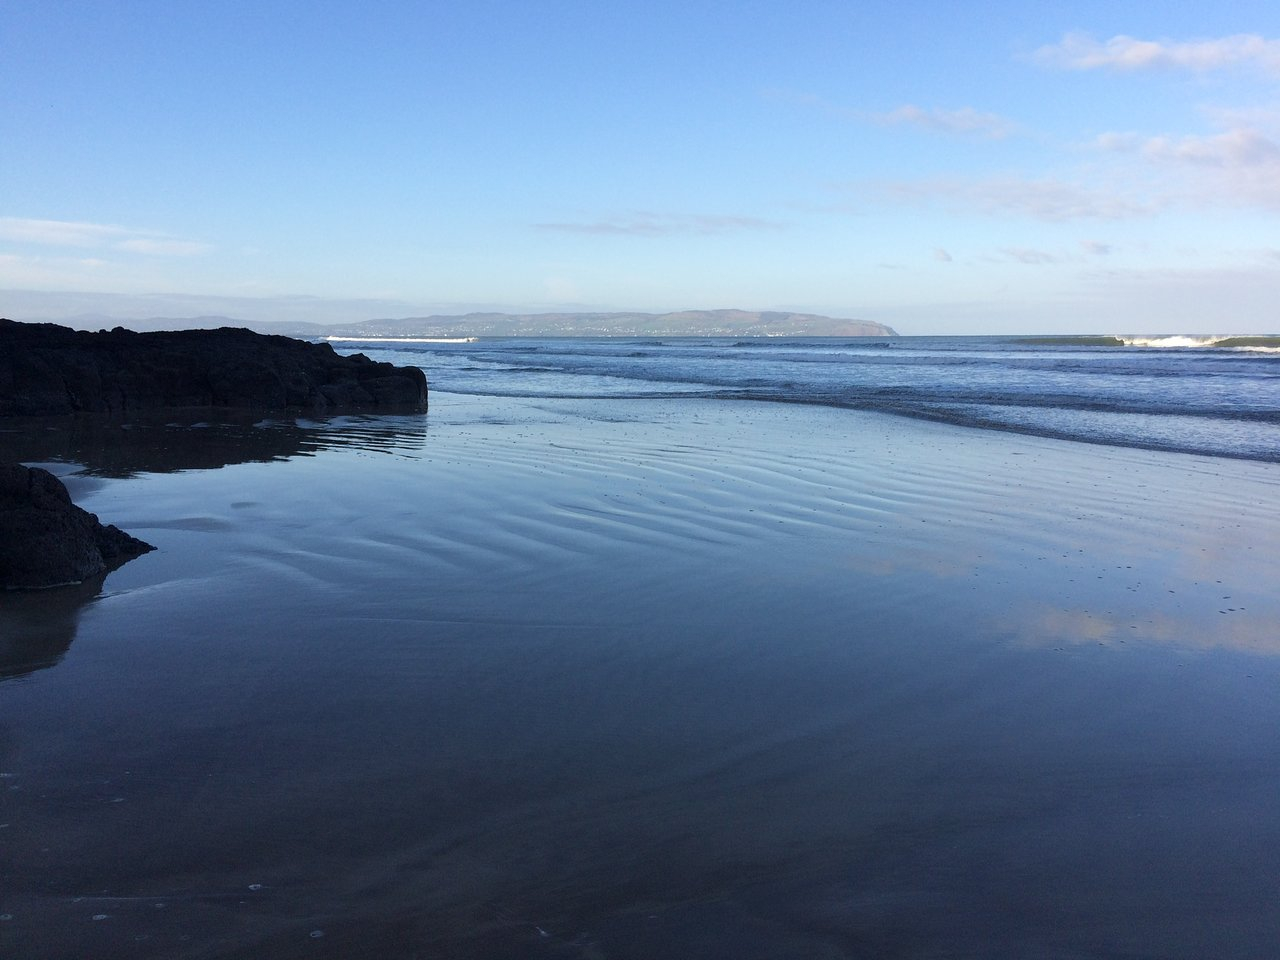 10 Things to do on NI beaches - Discover Northern Ireland